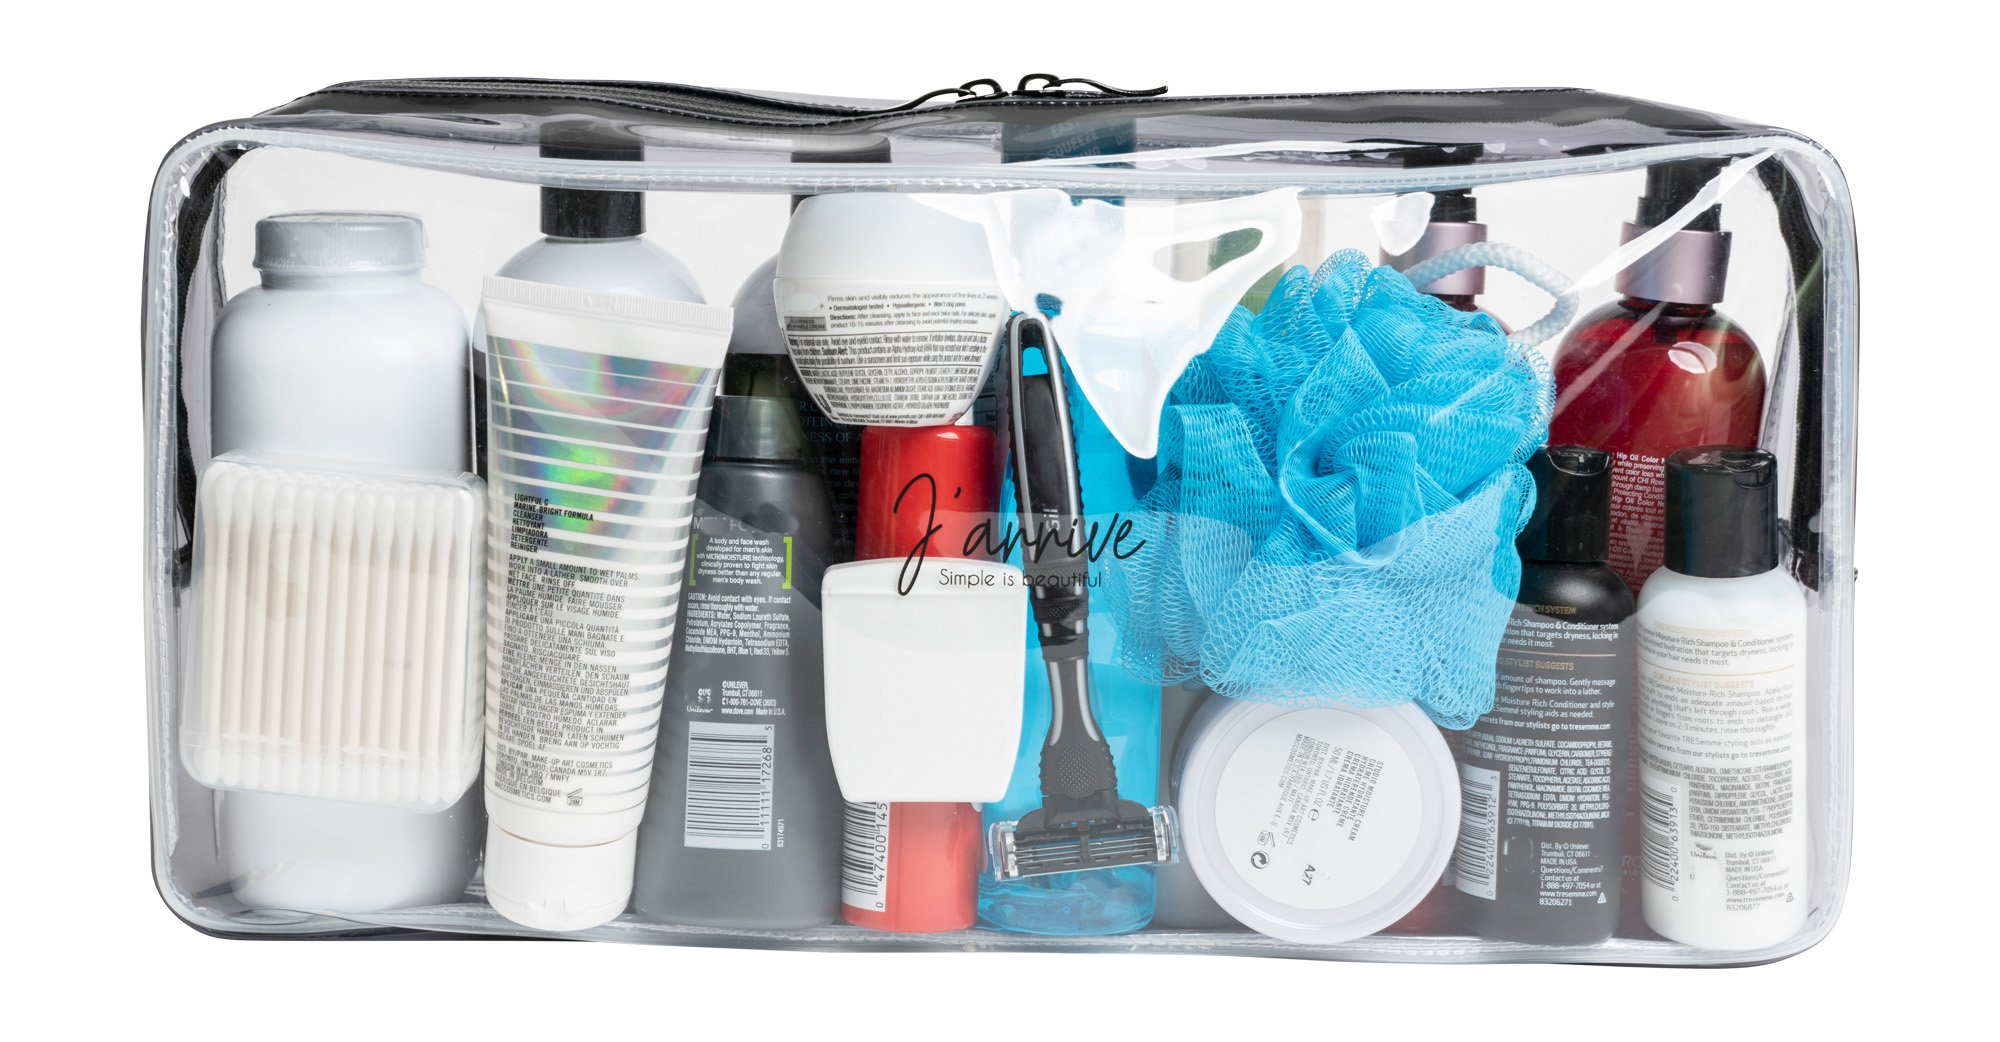 Extra-Large Clear Toiletry Bag/Transparent Leakproof Travel Bag/For Men and Women by J'arrive